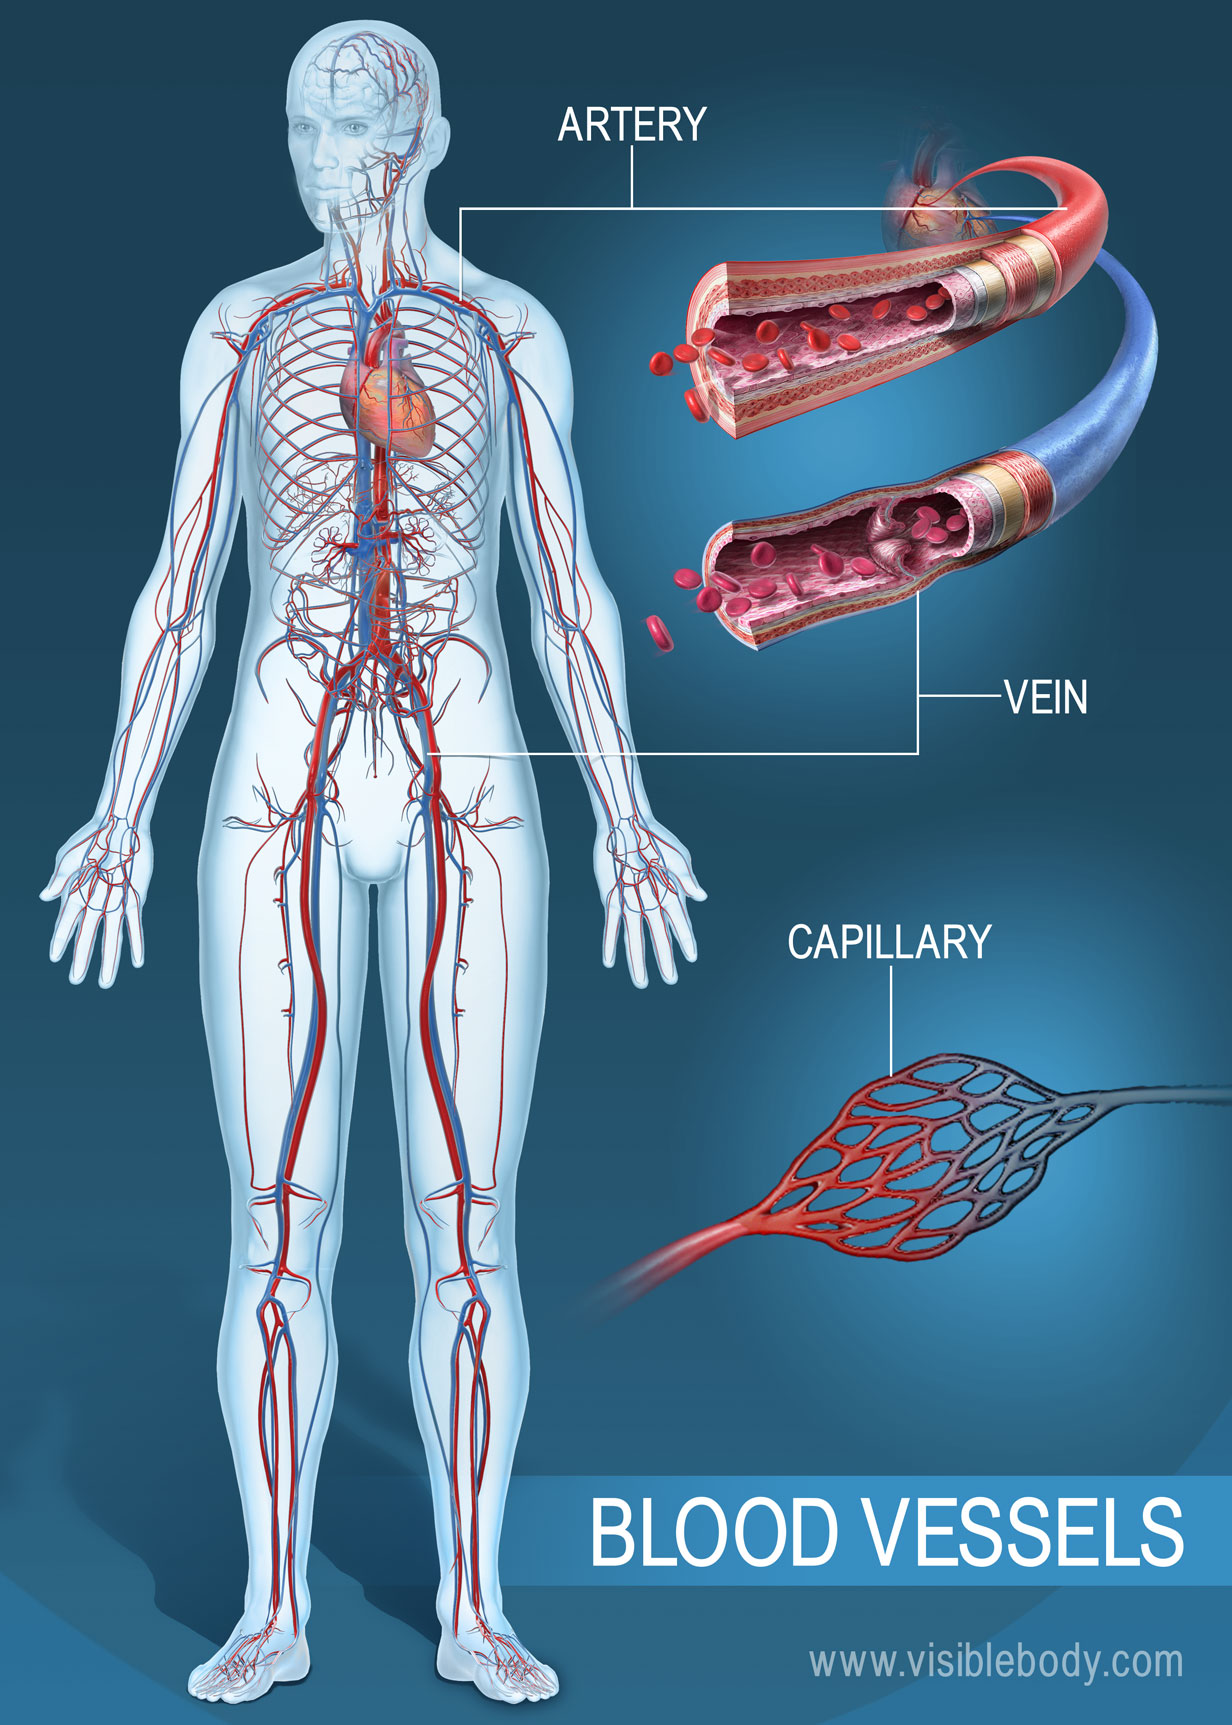 Biol 228 A&P: arteries and veins and the Circulatory System